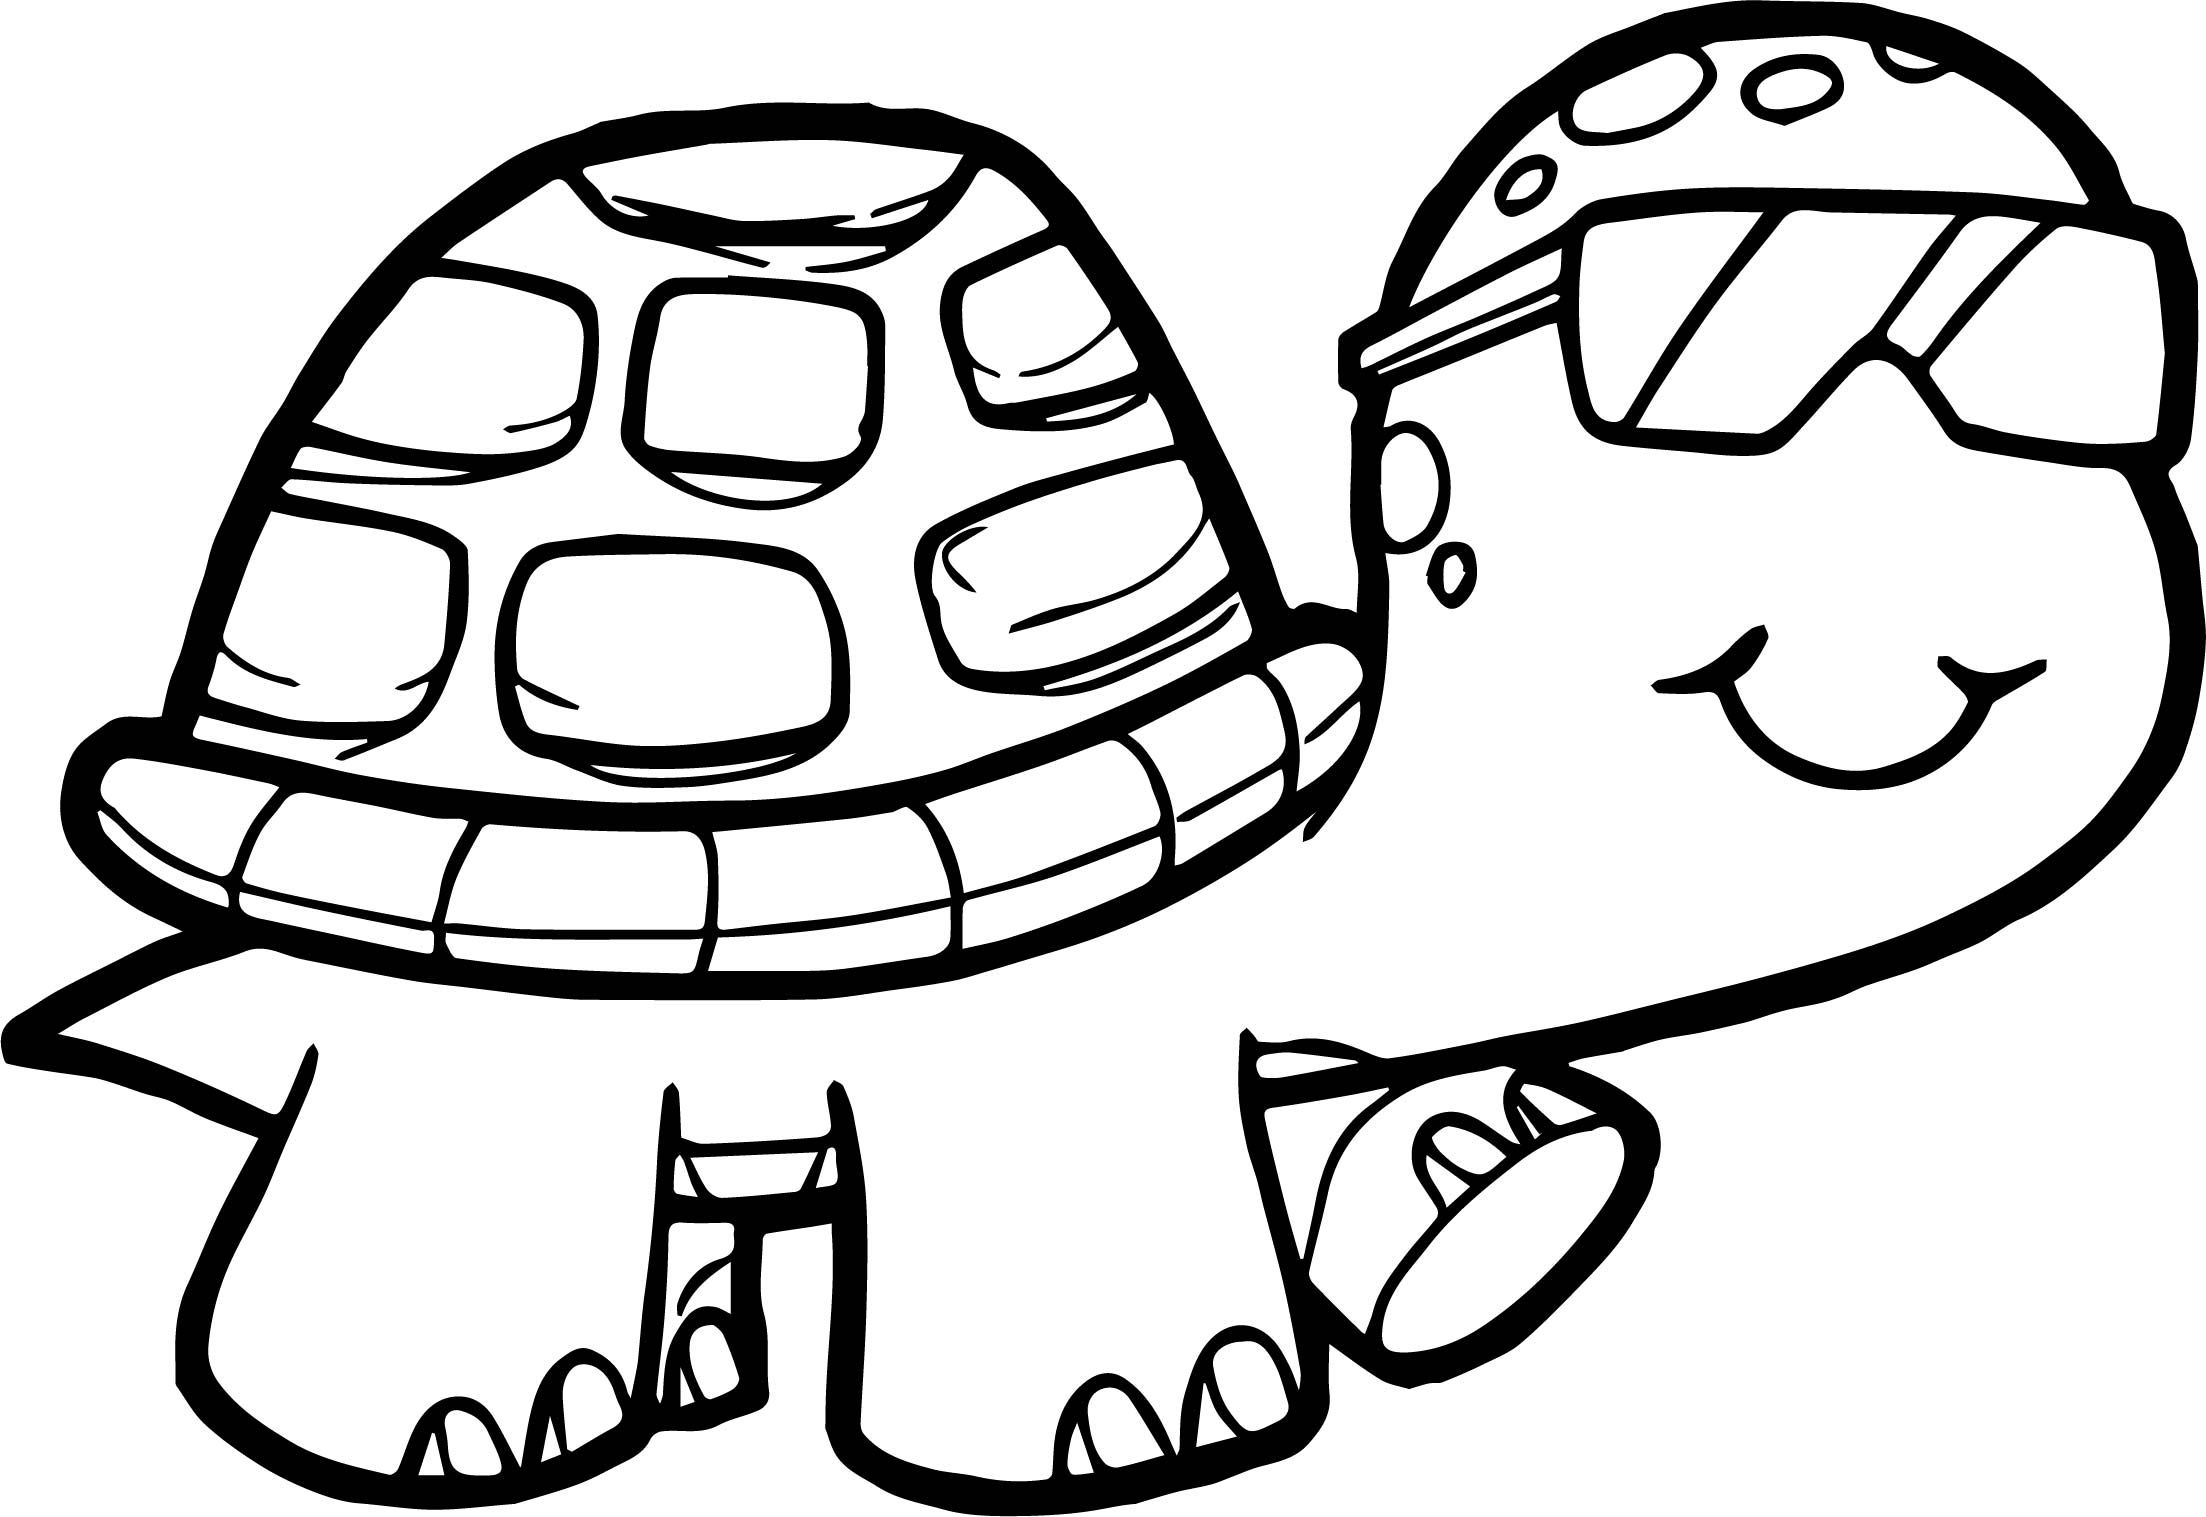 Glasses Tortoise Turtle Coloring Page Turtle Coloring Pages Unicorn Coloring Pages Kids Printable Coloring Pages